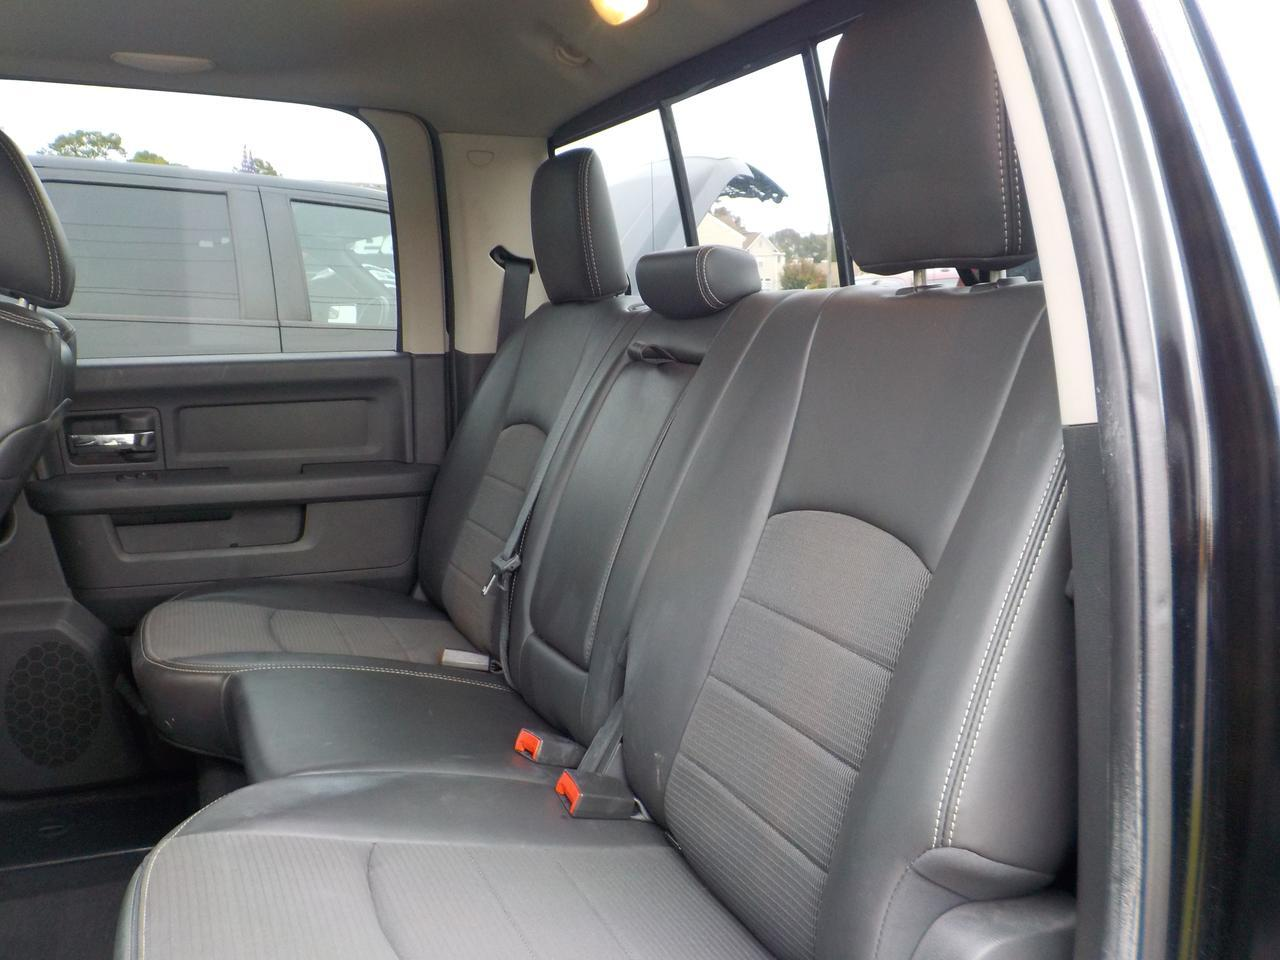 2012 RAM 1500 SPORT HEMI 4X4, ONE OWNER, SUNROOF, ALPINE SOUND SYSTEM, BLUETOOTH, UCONNECT! Virginia Beach VA